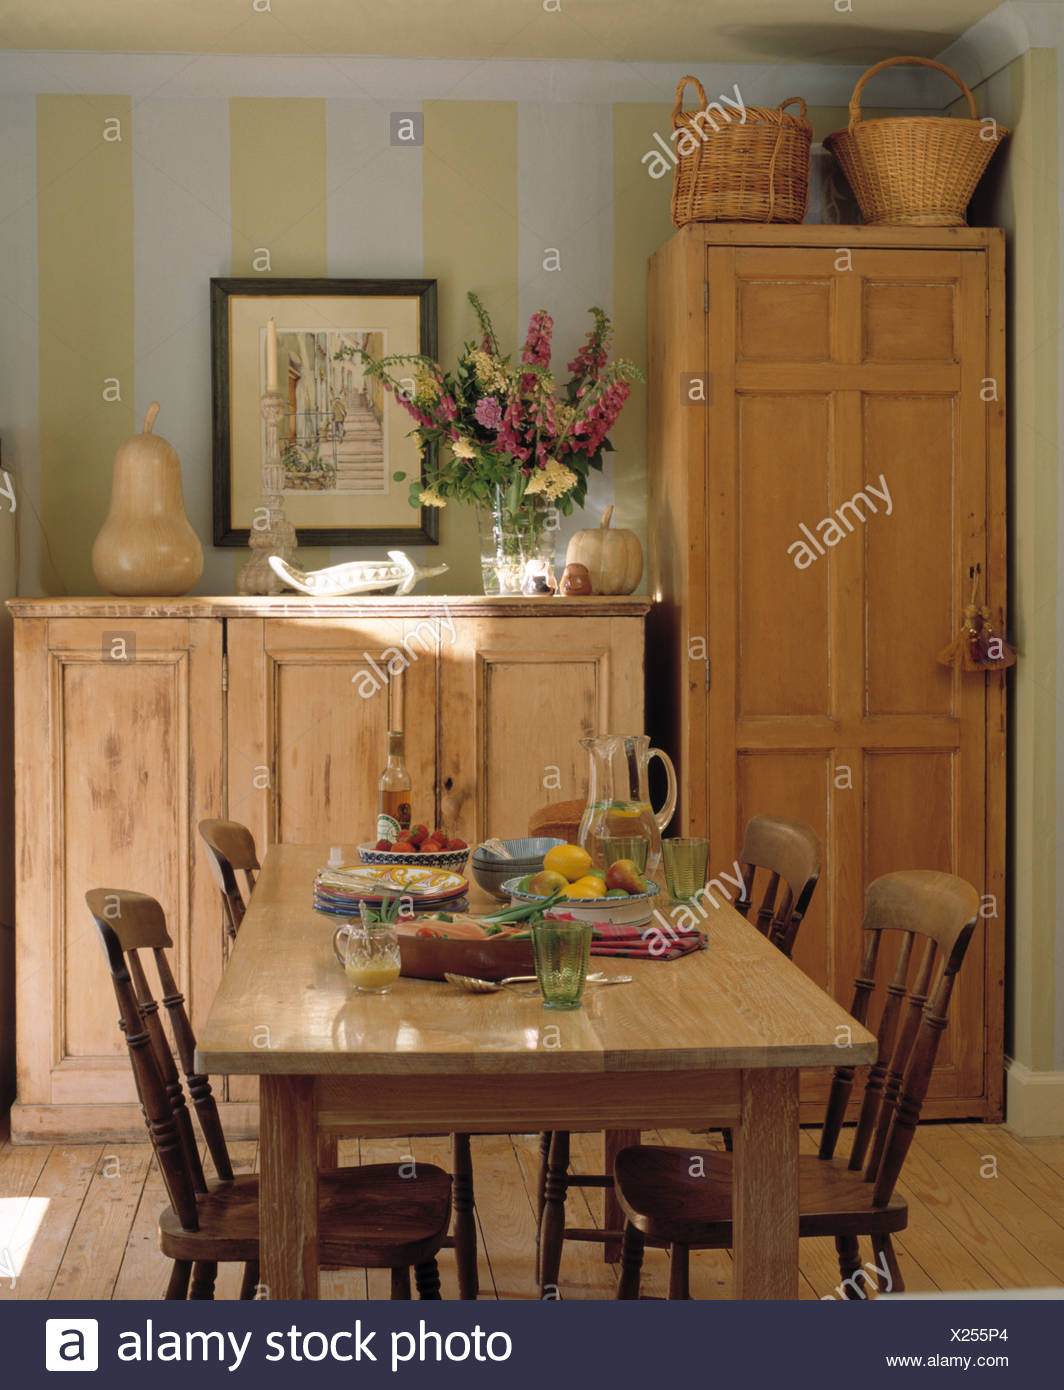 Simple wood table and old wood chairs in striped dining room ...